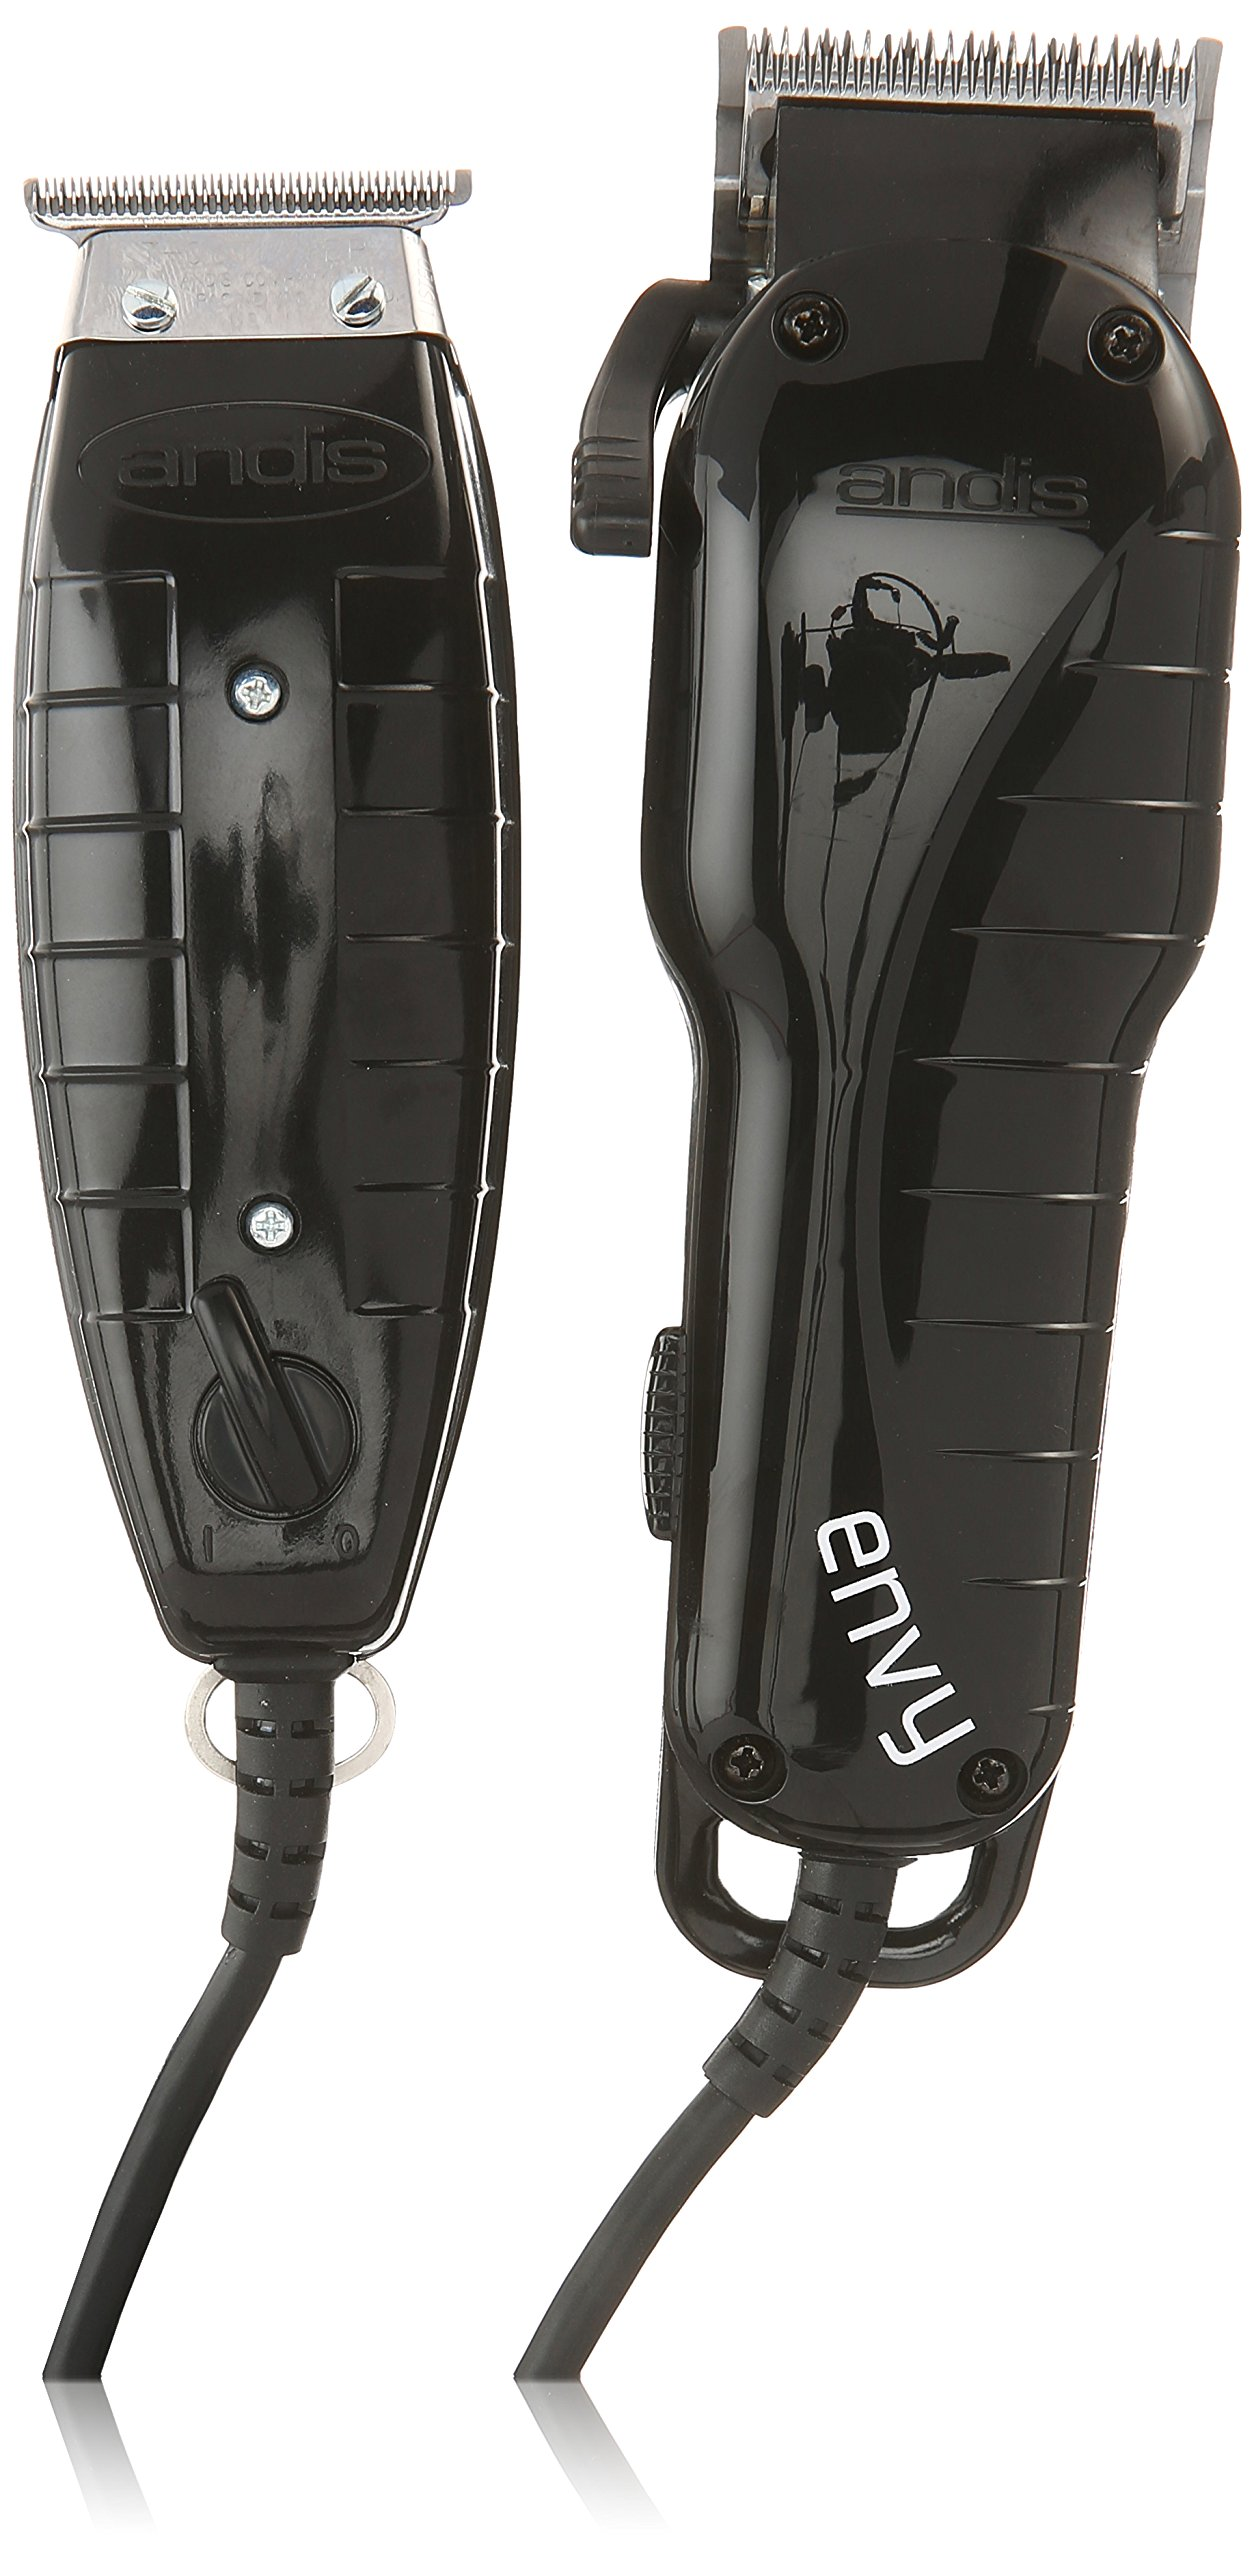 Andis Stylist Combo Envy Clipper + T-Outliner Trimmer Black Combo Haircut Kit 66280 by Andis